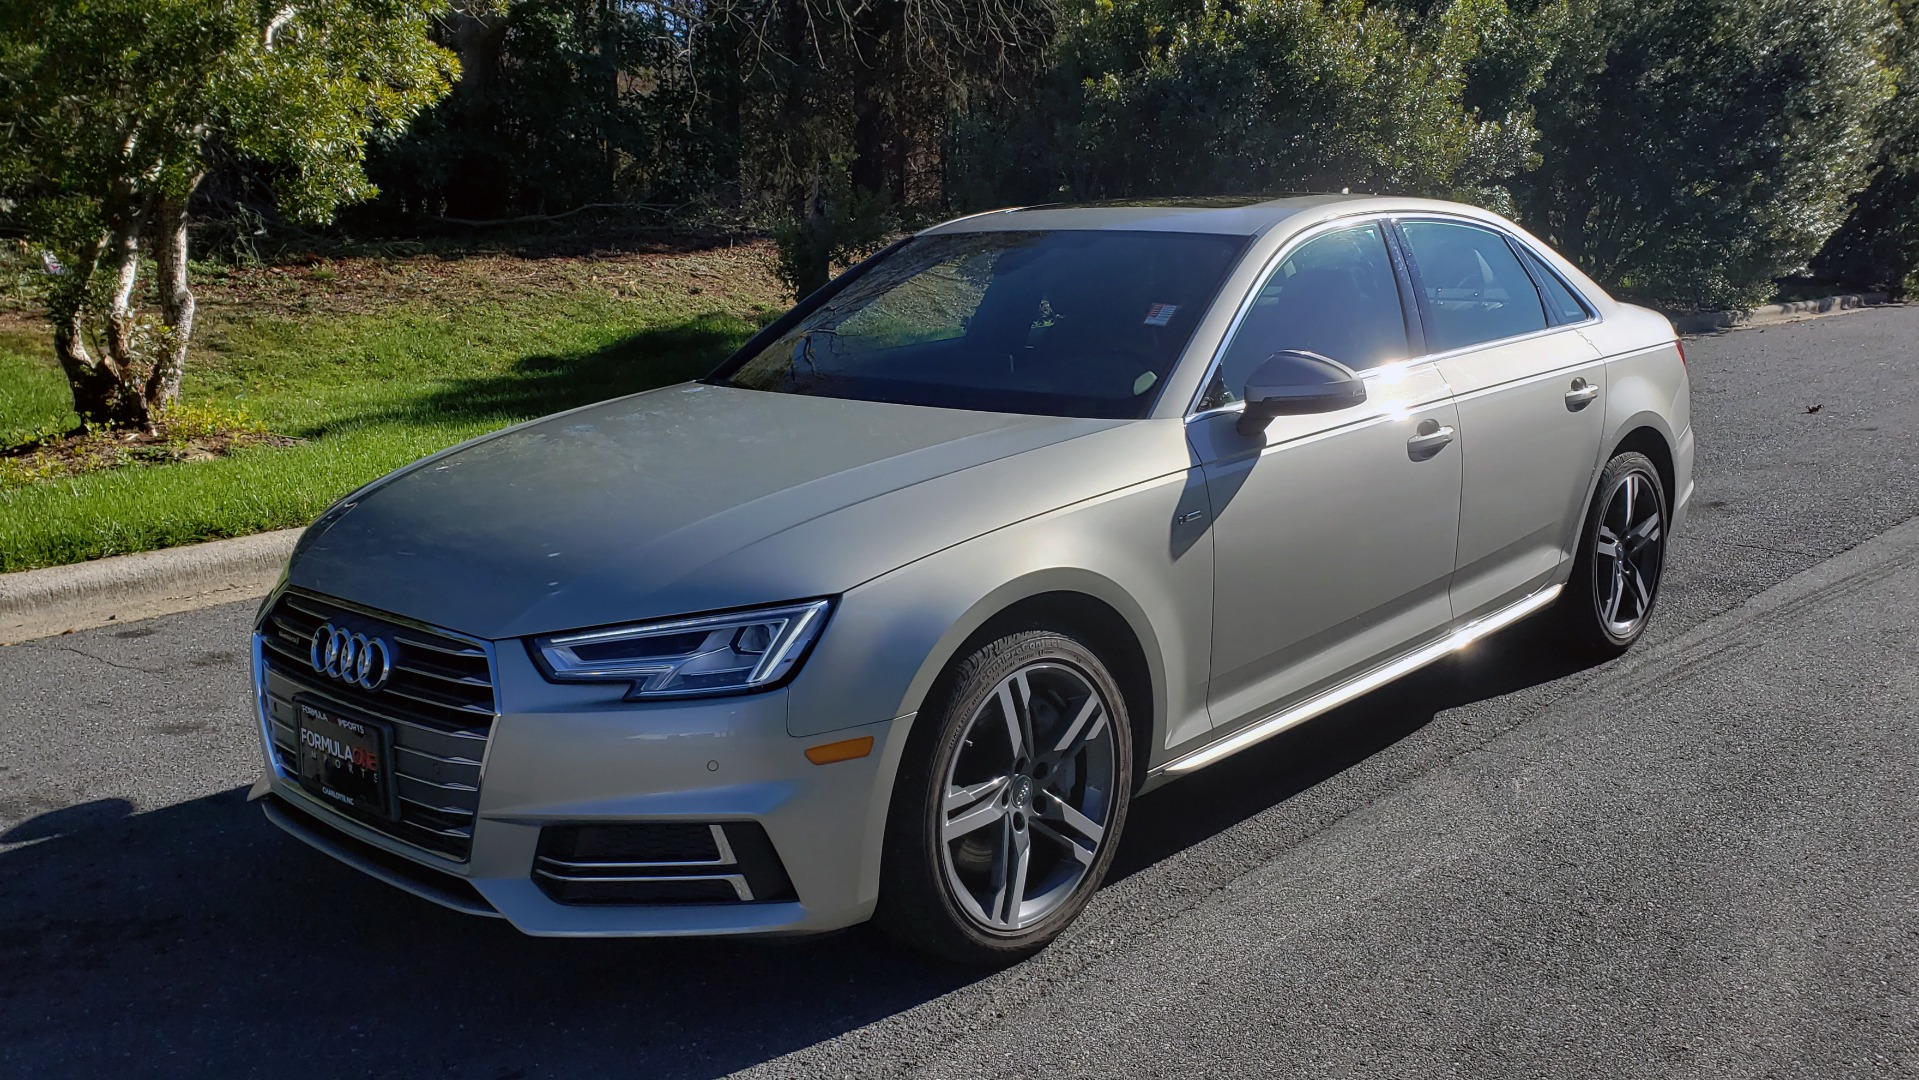 Used 2017 Audi A4 PREMIUM PLUS / TECH PKG / B&O SND / S-LINE / NAV / REARVIEW for sale $24,995 at Formula Imports in Charlotte NC 28227 1